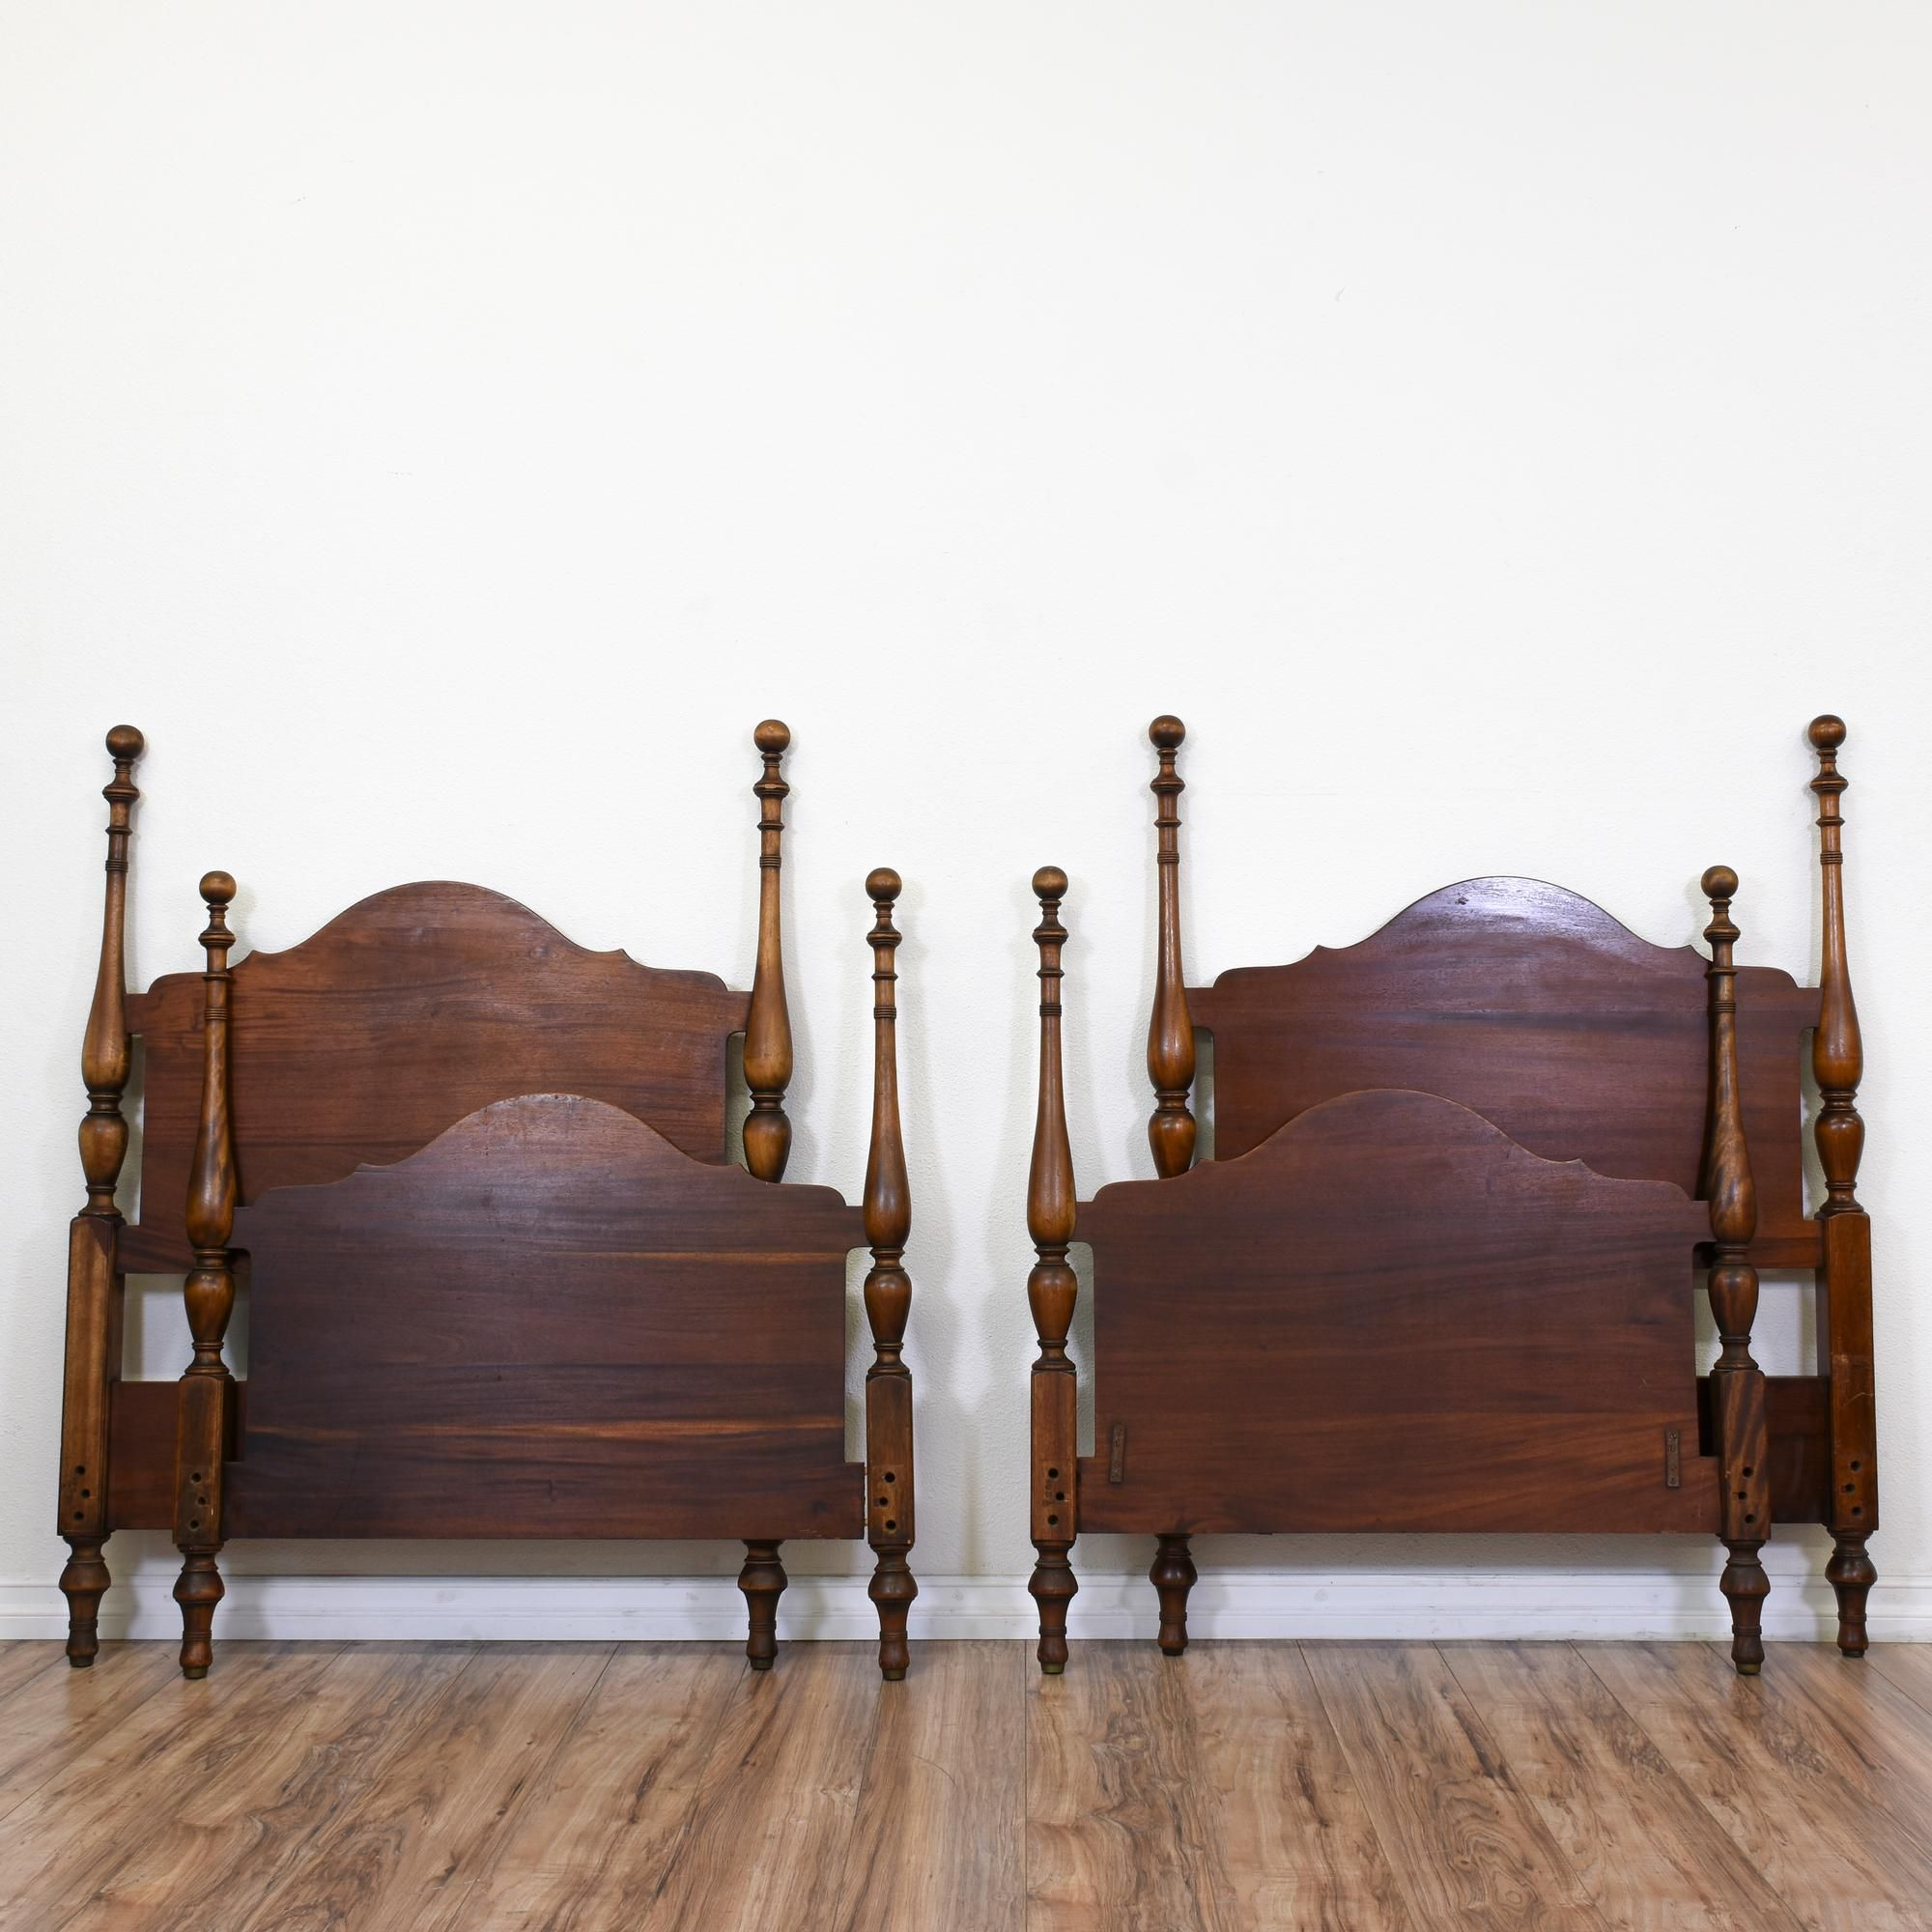 These Antique Twin Beds Are Featured In A Solid Wood With Mahogany Finish Each Headboard And Footboard Have Round Finial Tops Scallop Crest Rail